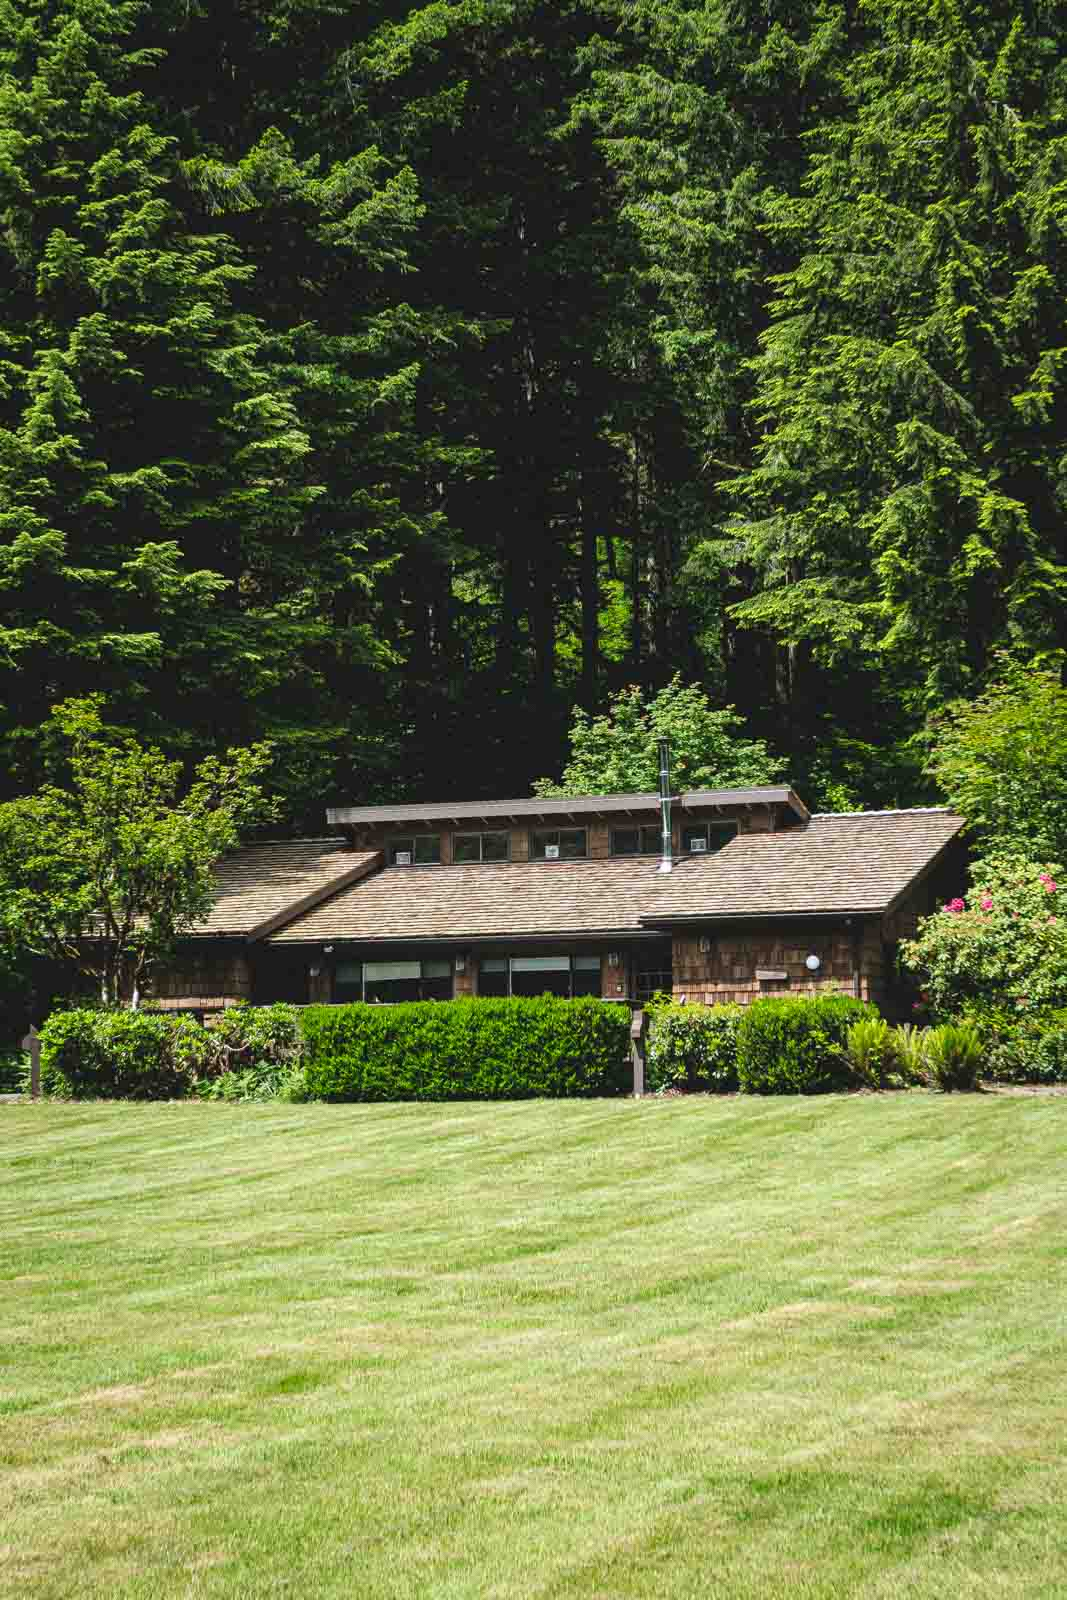 Lodging at Silver Falls State Park